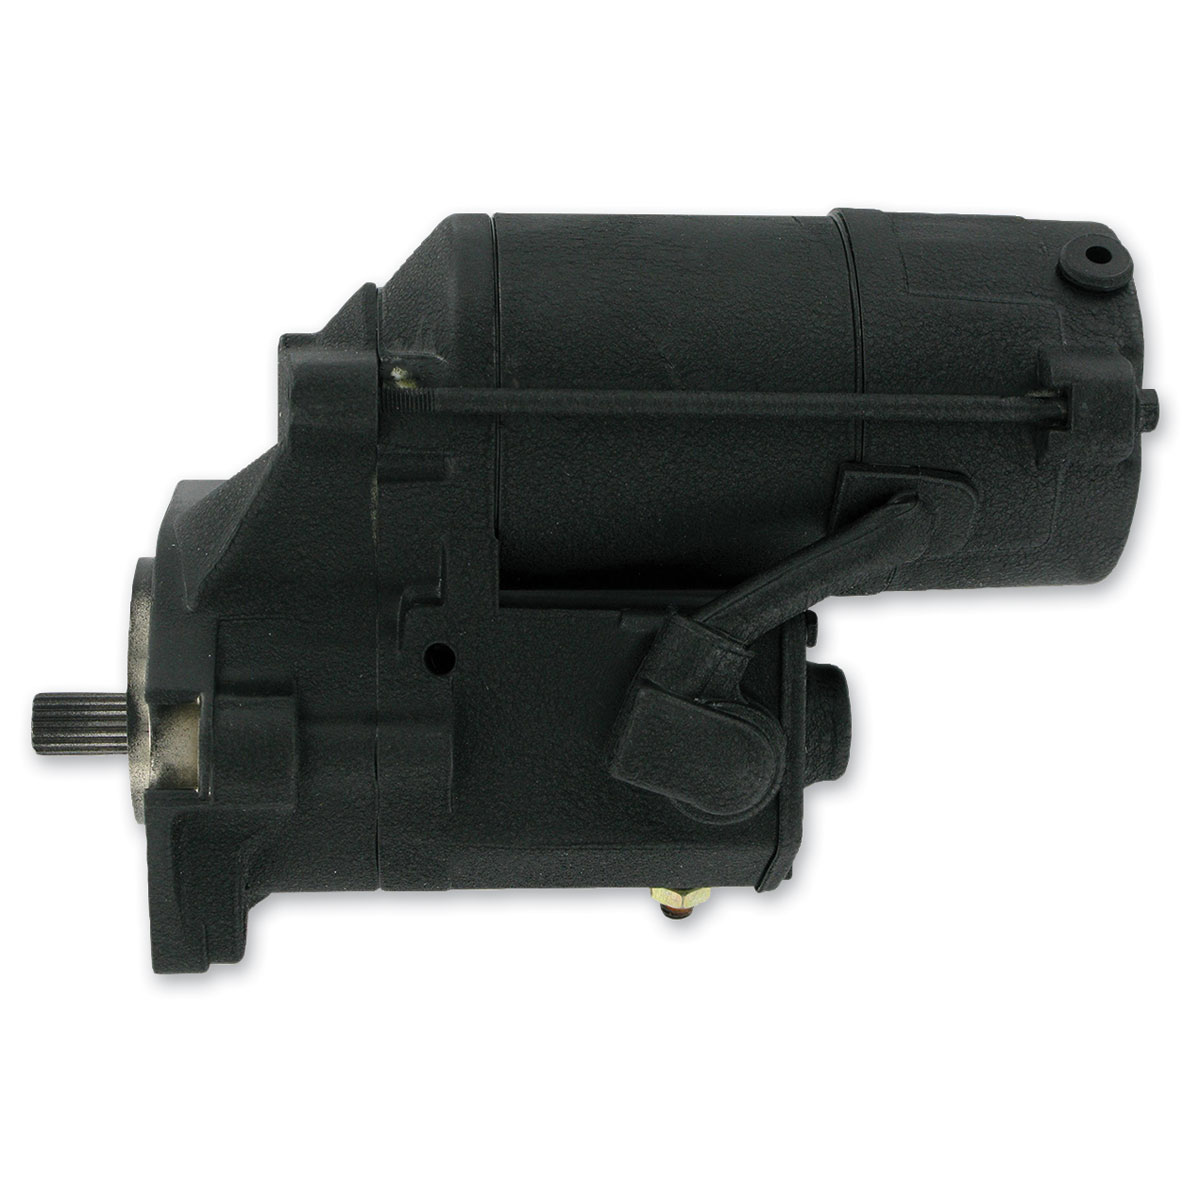 Terry Components 1.8 kW Starter Motor Black